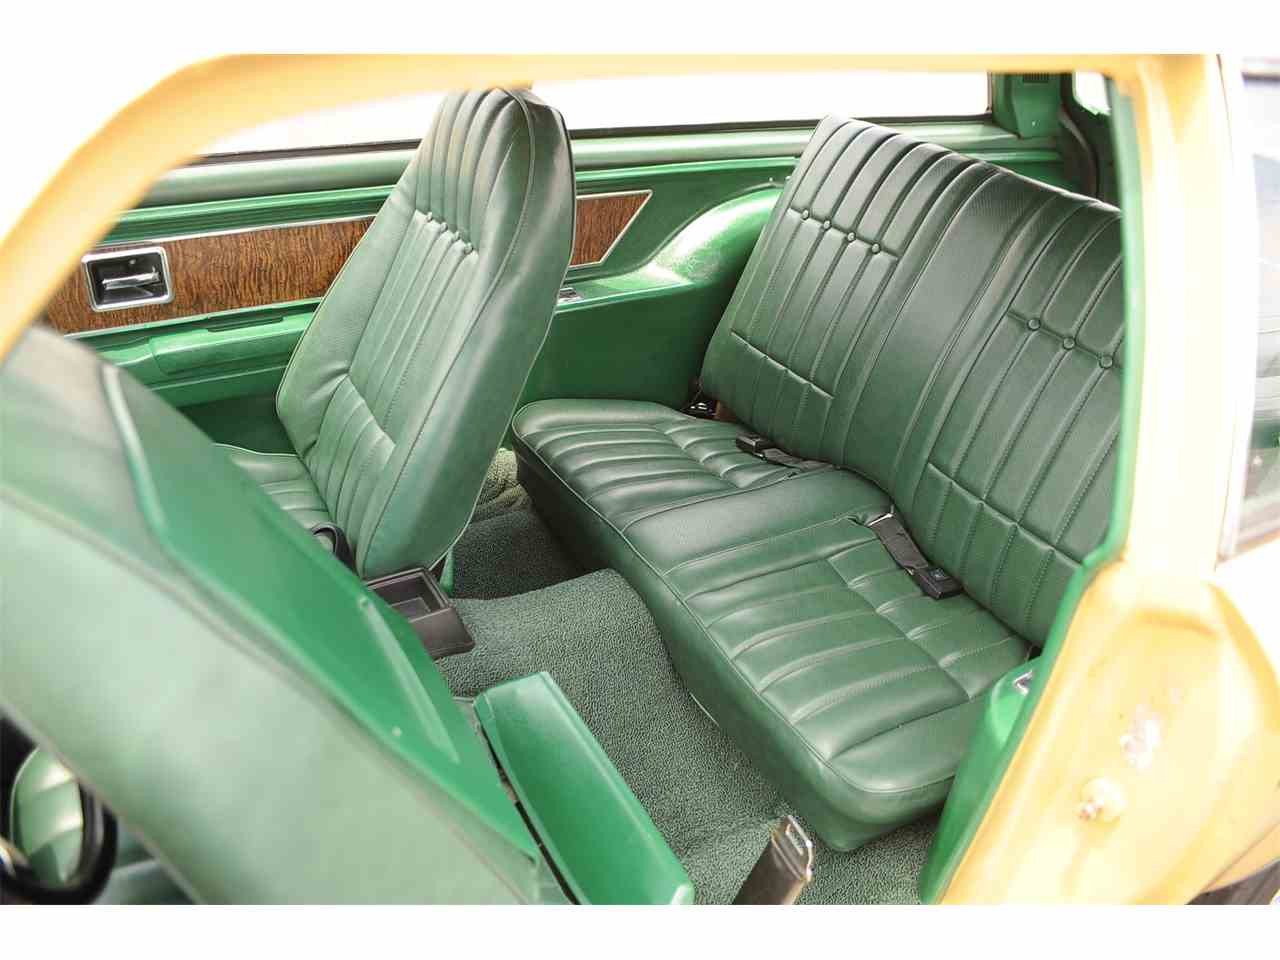 Large Picture of 1973 Chevrolet Vega located in Costa mesa California - $17,500.00 Offered by a Private Seller - LFY9